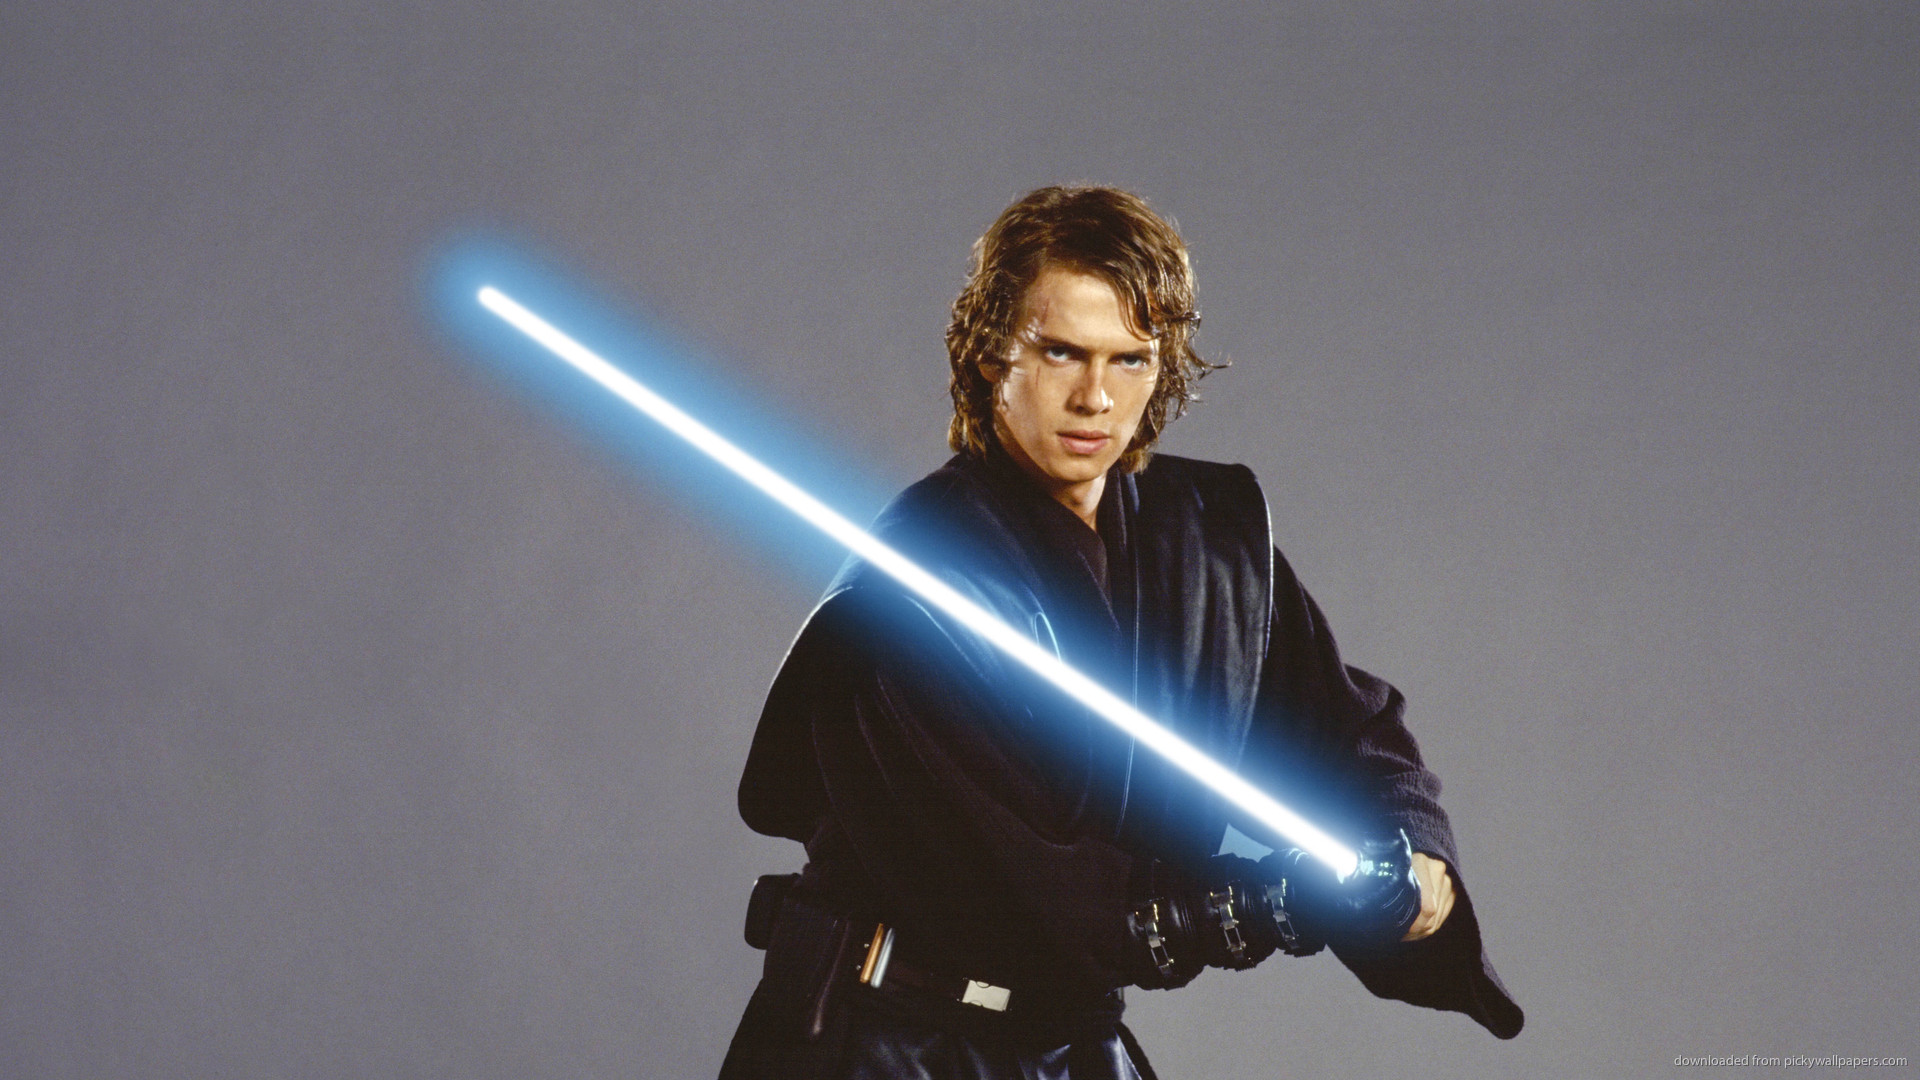 star wars anakin wallpaper lightsaber skywalker twitter tvshows 1920x1080